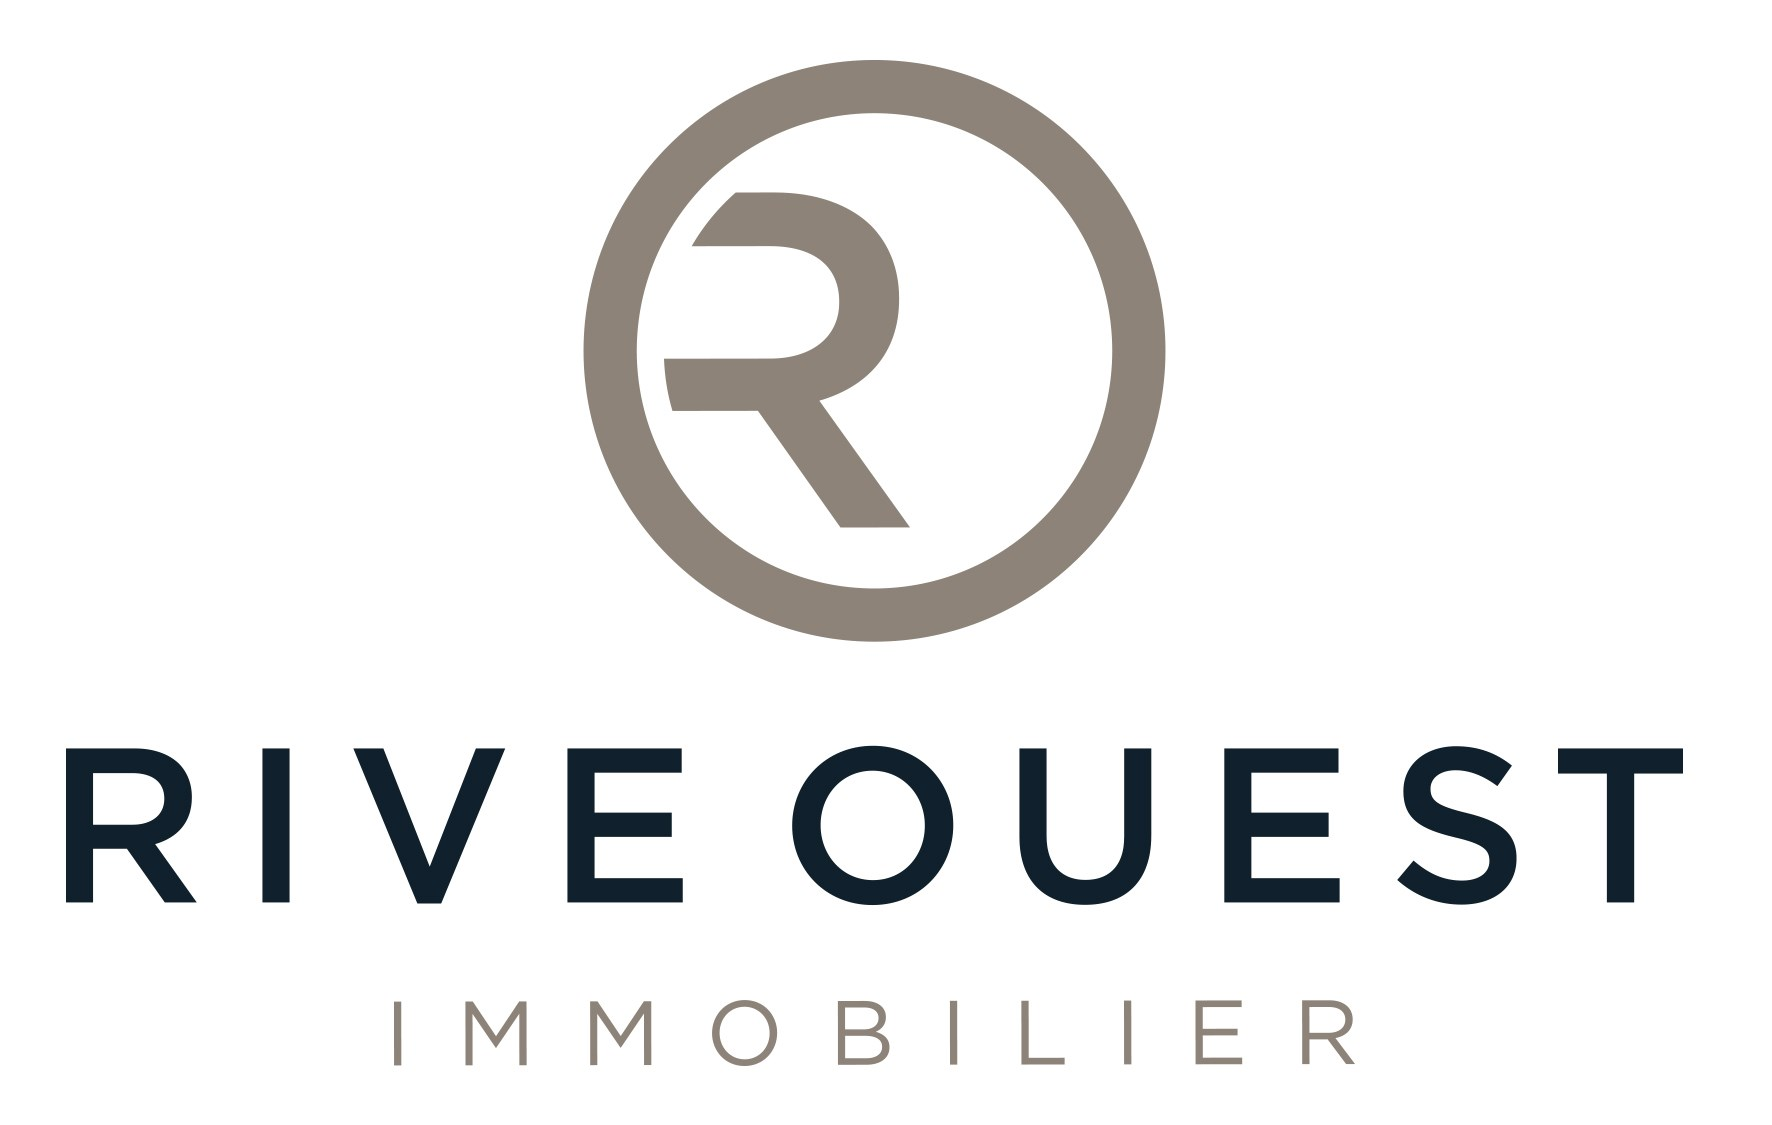 Rive ouest immobilier agence immobili re de luxe for Agence immobiliere 3f boulogne billancourt